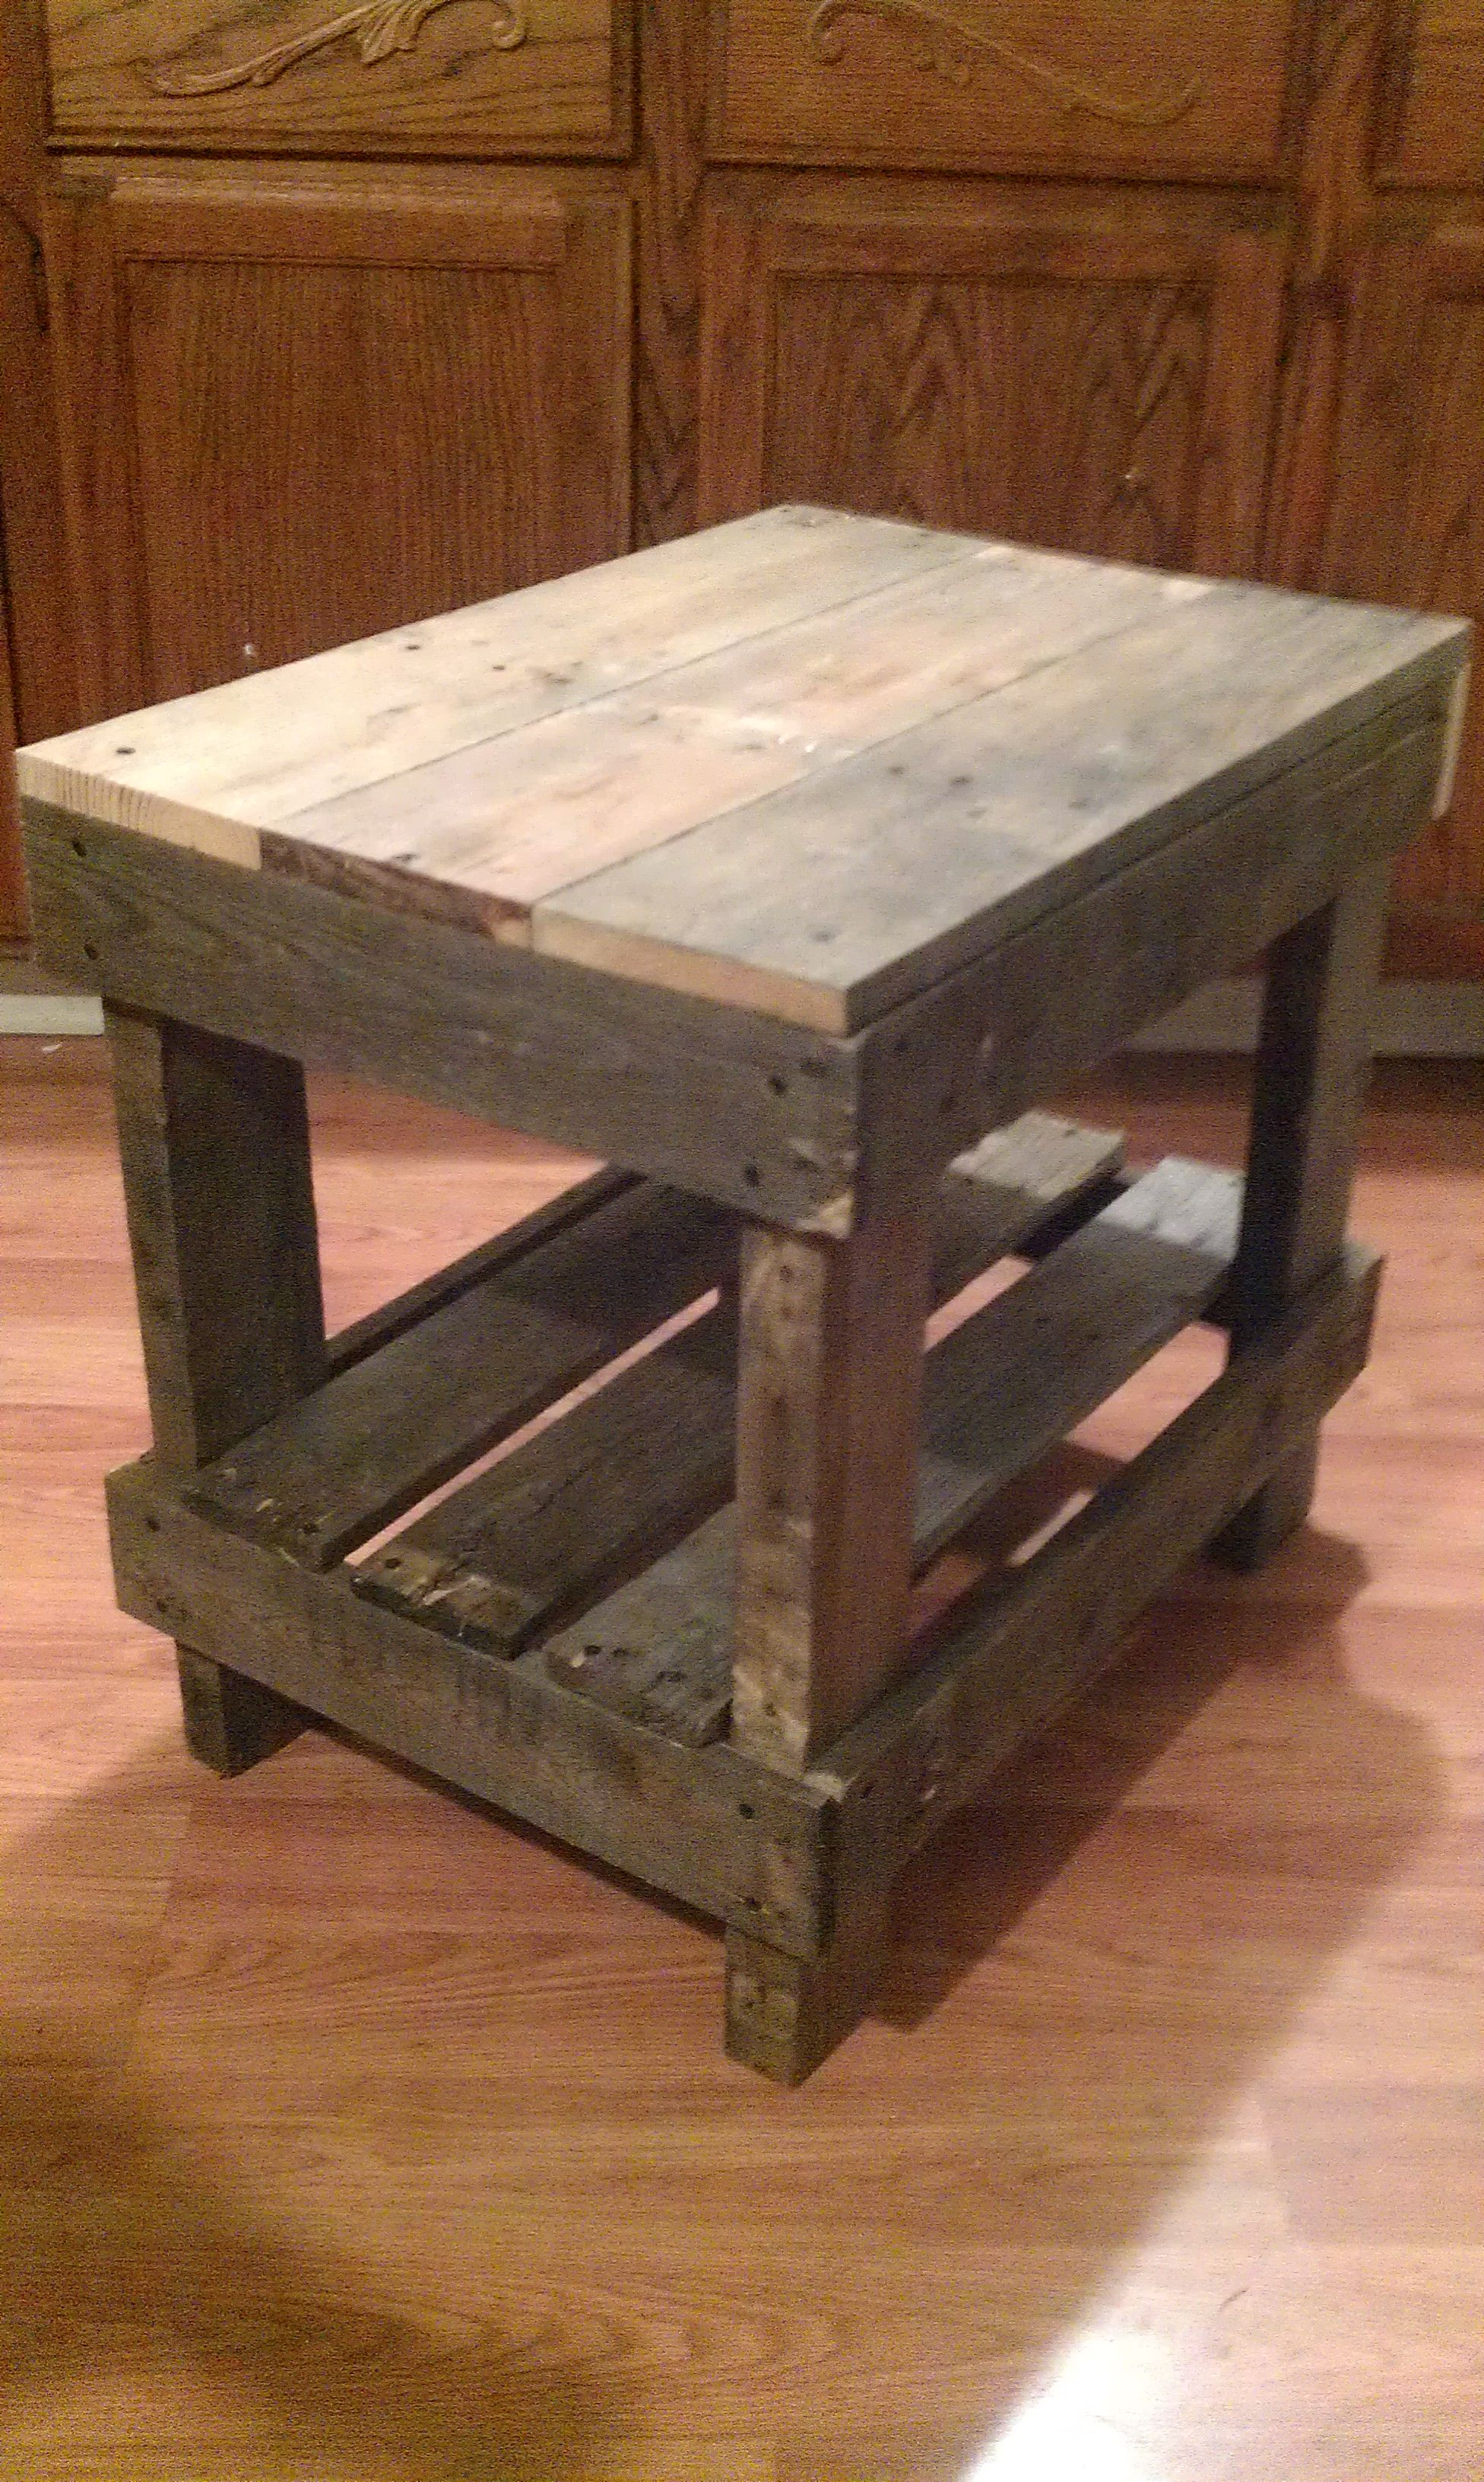 This Is One Of The End Tables We Made From Pallet Wood Pallet